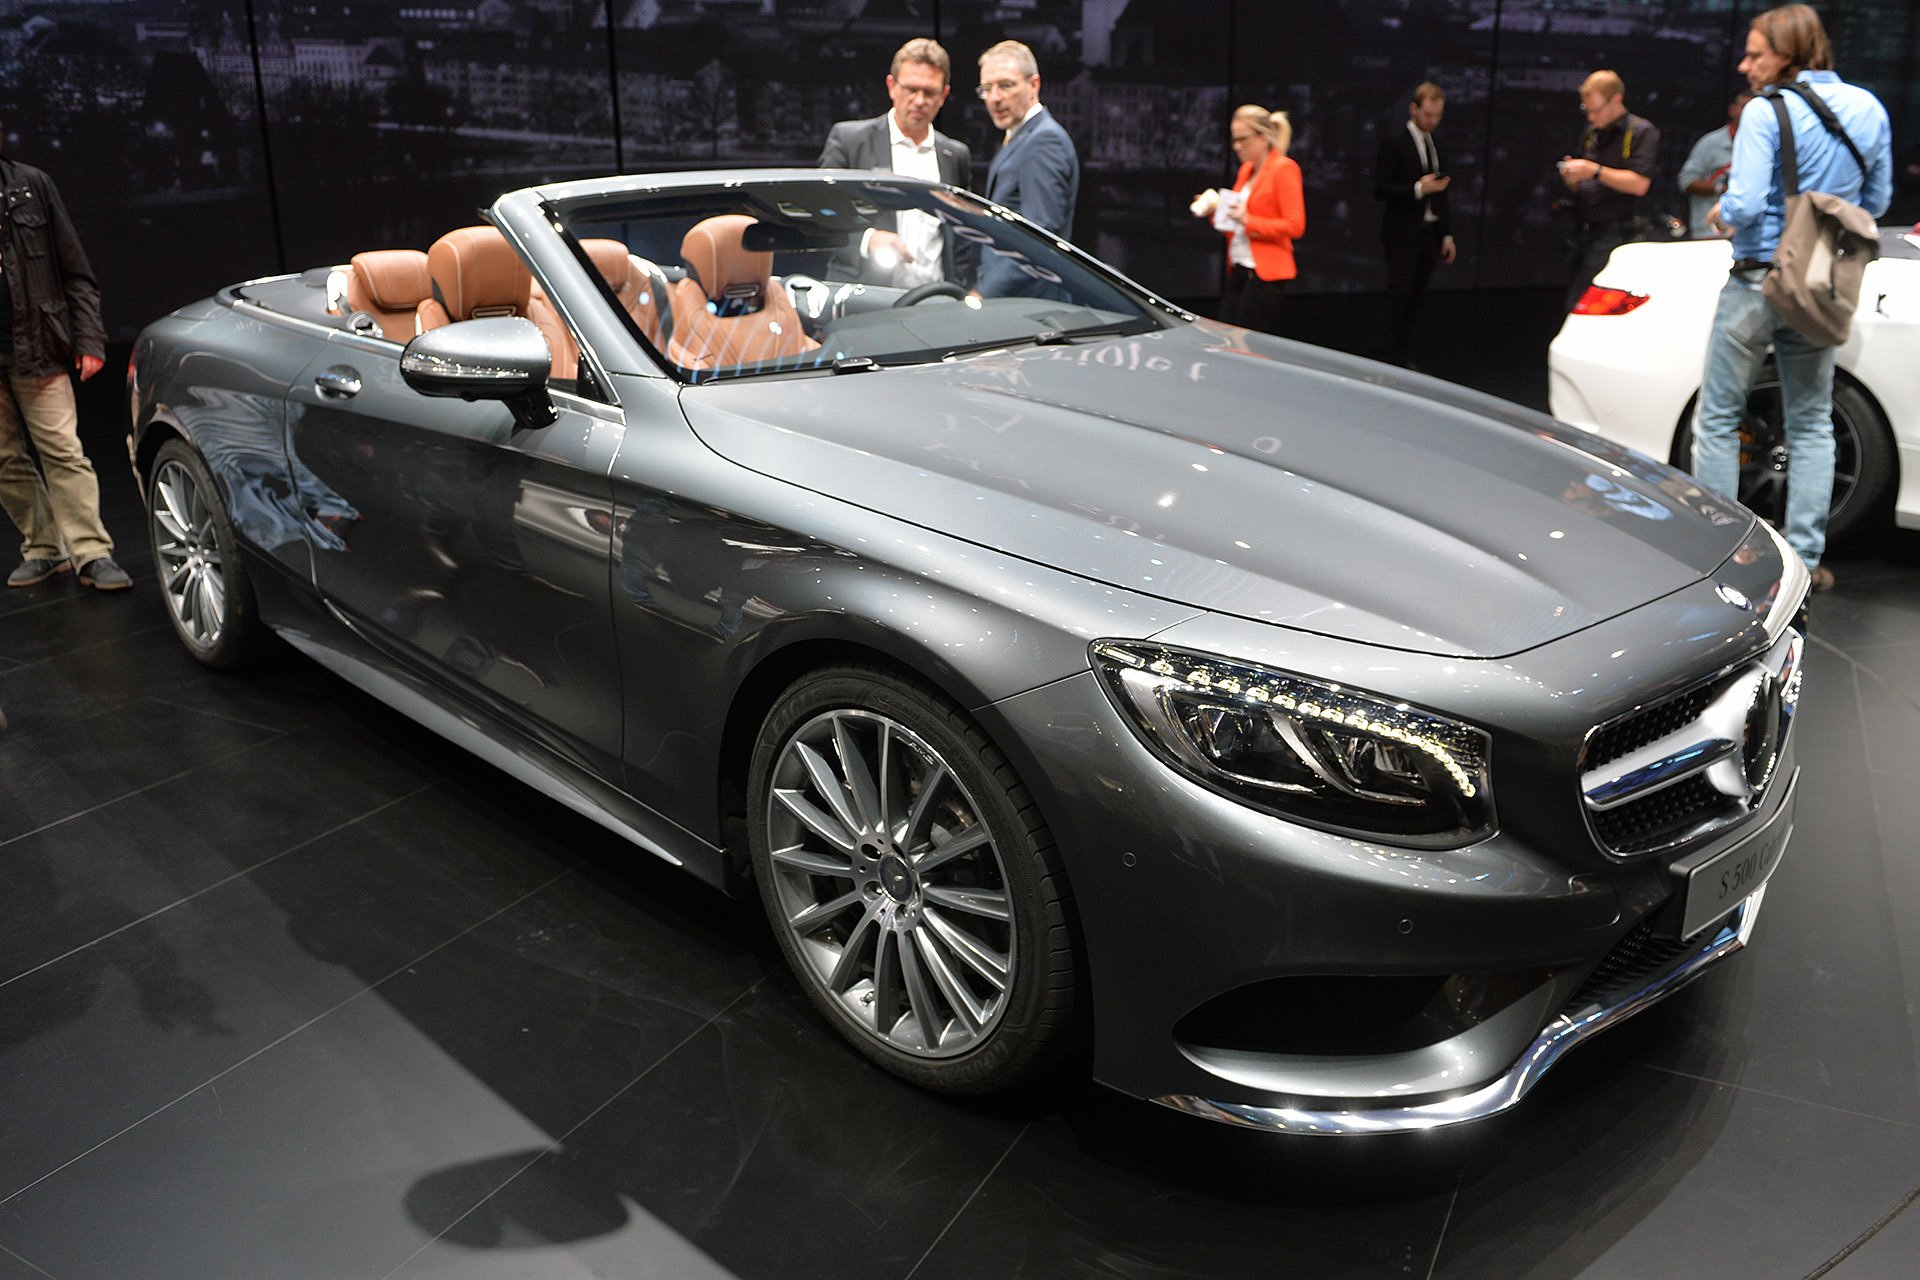 2016 mercedes s 500 cabriolet cars wallpaper 1920x1280. Black Bedroom Furniture Sets. Home Design Ideas